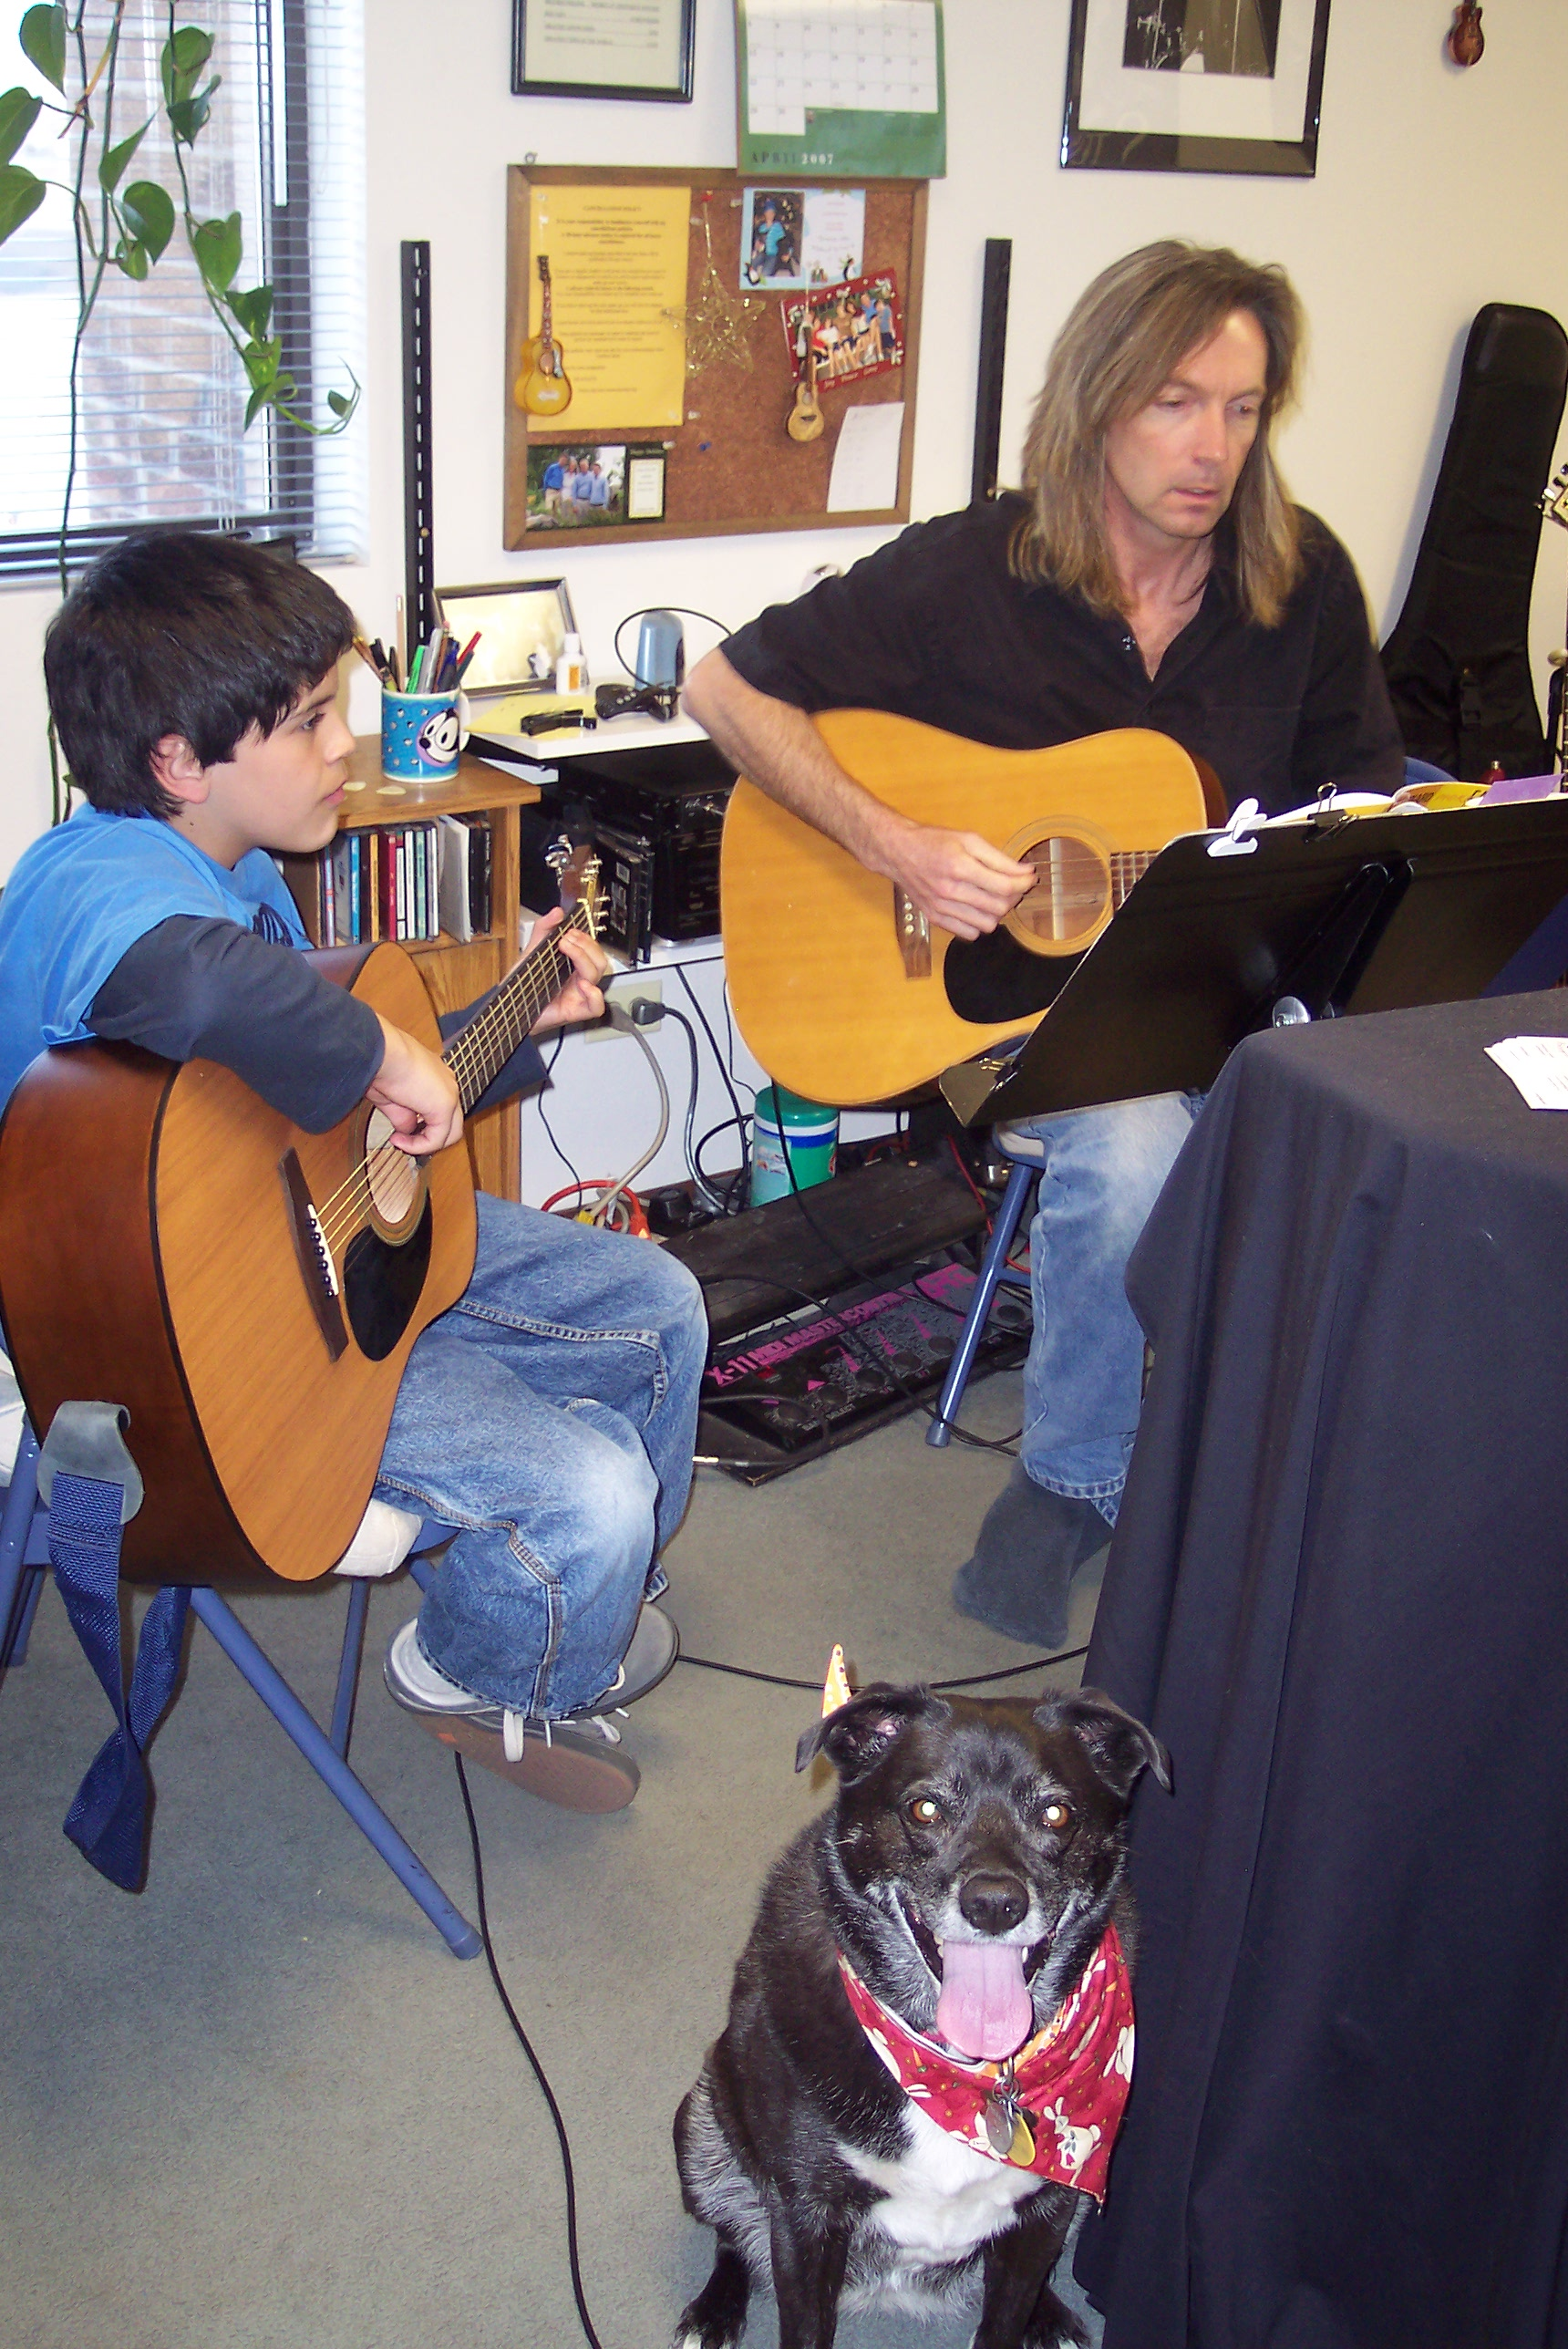 Bill with guitar student and a canine buddy